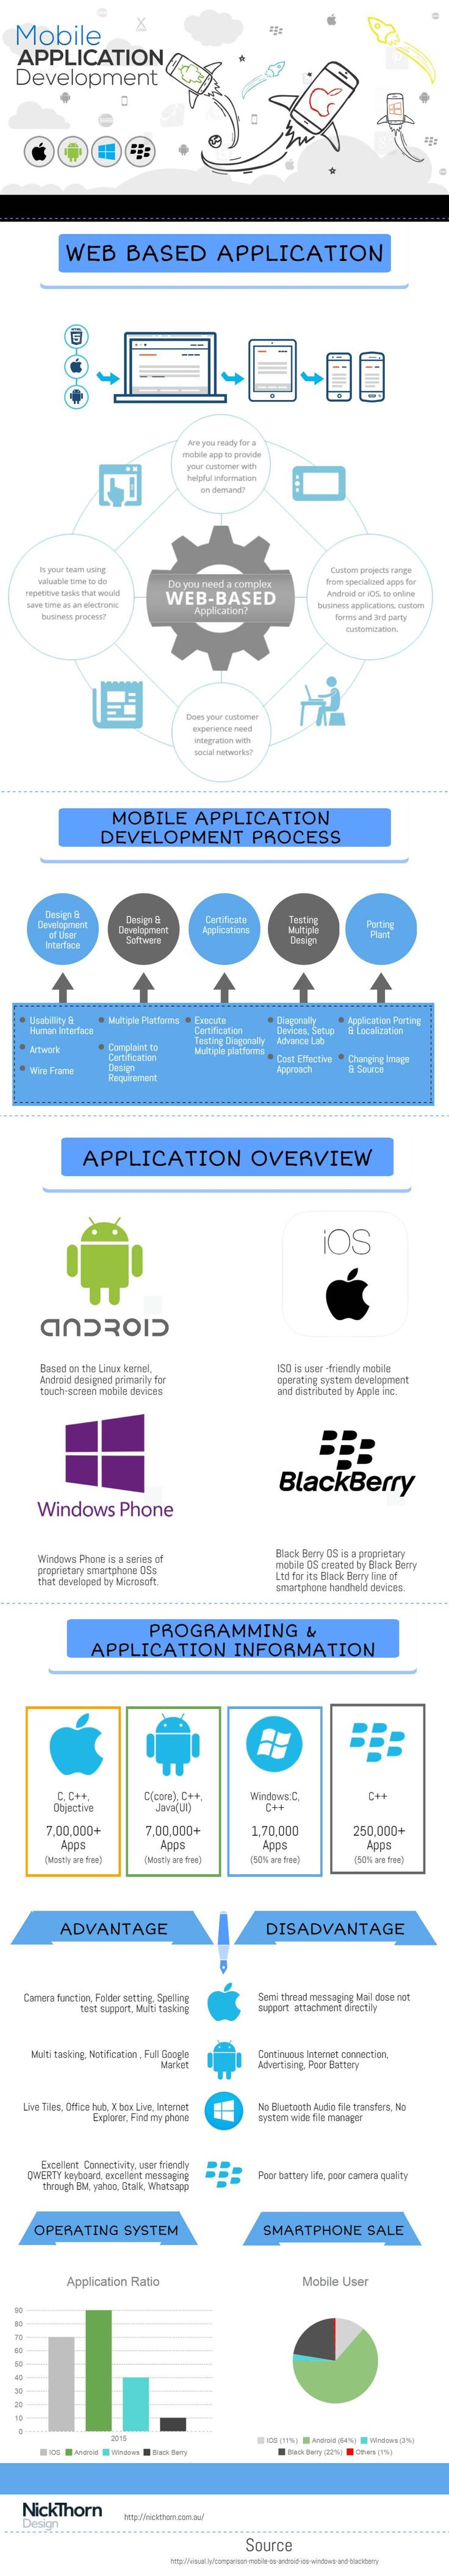 69a3e86600f85d7356081cd762bf25d1--application-mobile-mobile-application-development Exciting Blackberry Z10 Bmw Snap In Cars Trend